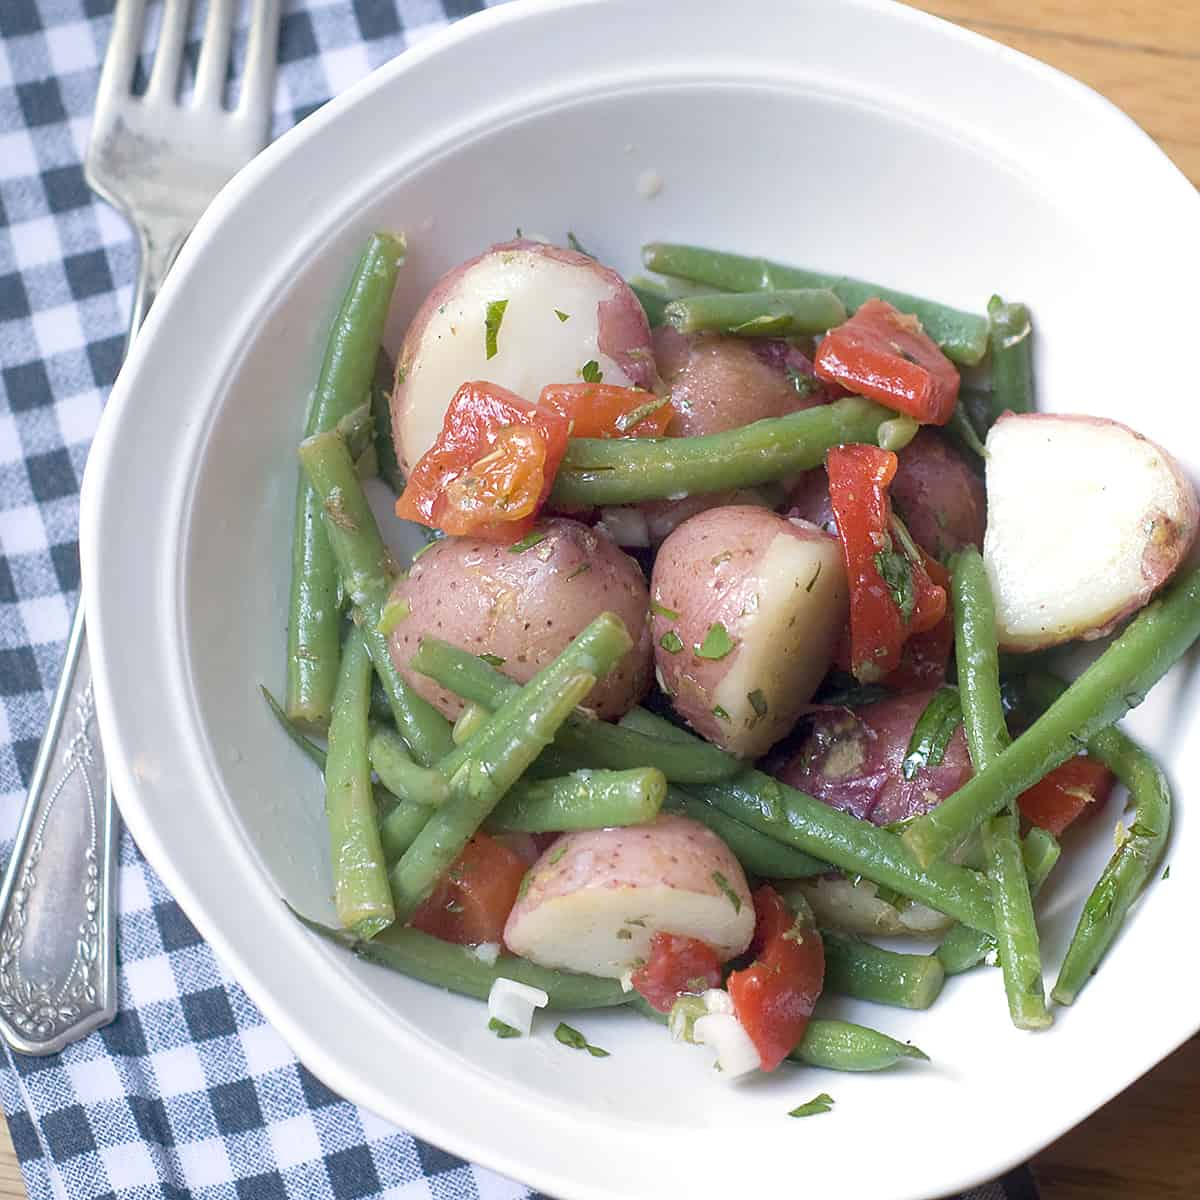 A delicious Warm Vegetable Salad with red skinned potatoes and green beans tossed in a tangy lemon-garlic dressing. Great year round side dish! From @NevrEnoughThyme https://www.lanascooking.com/warm-vegetable-salad/